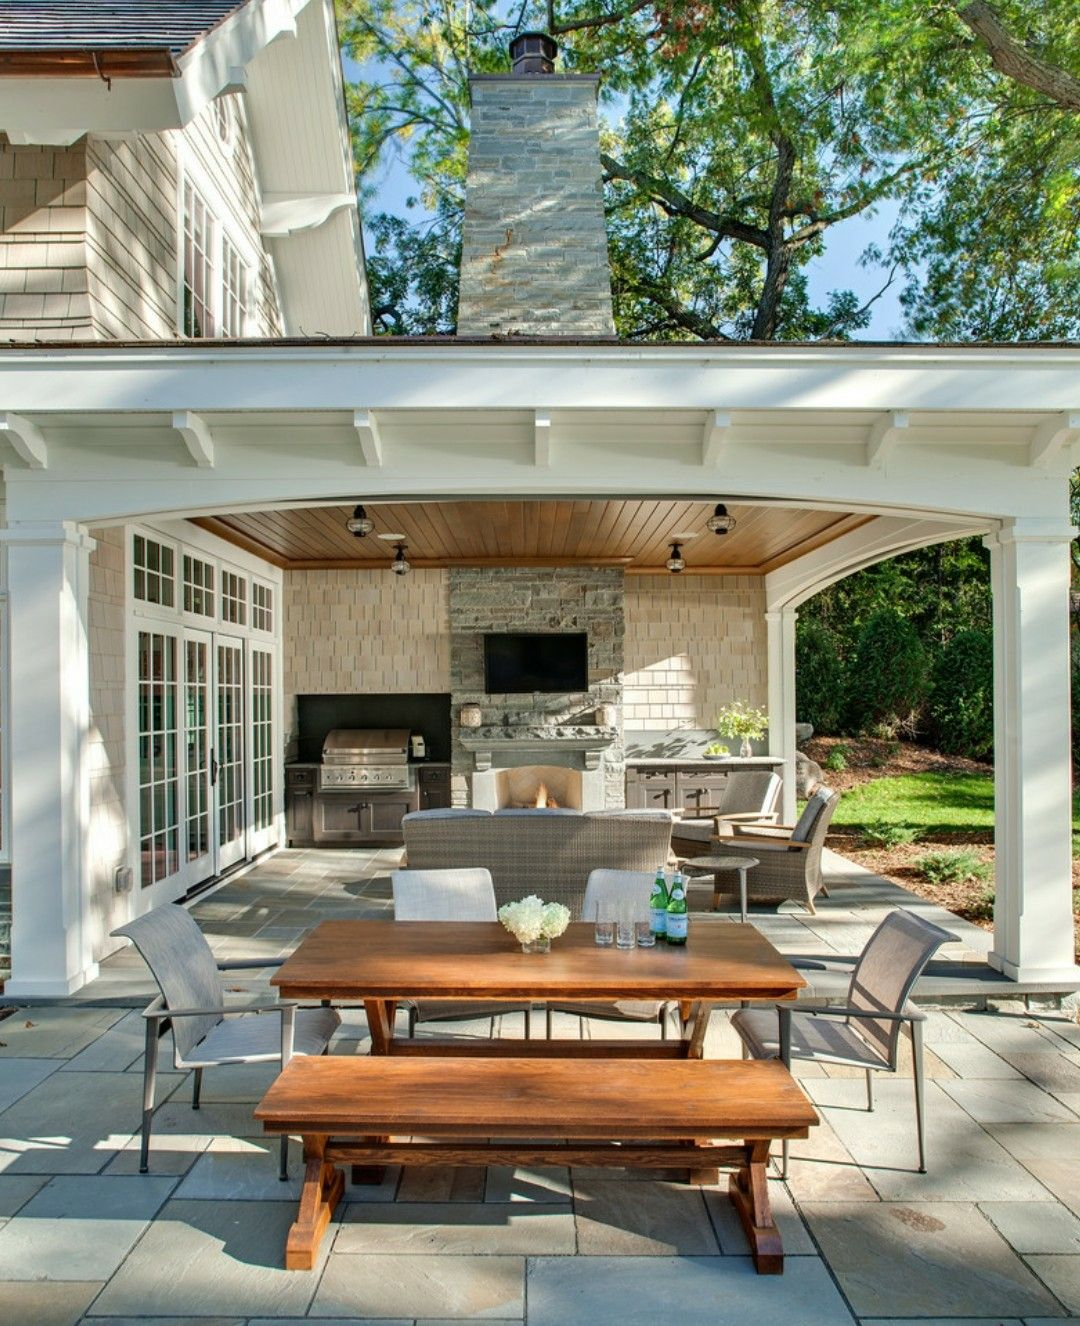 Pin By Mary Kubicek On Patio Outdoor Kitchen Design Layout Outdoor Kitchen Design Backyard Covered Patios